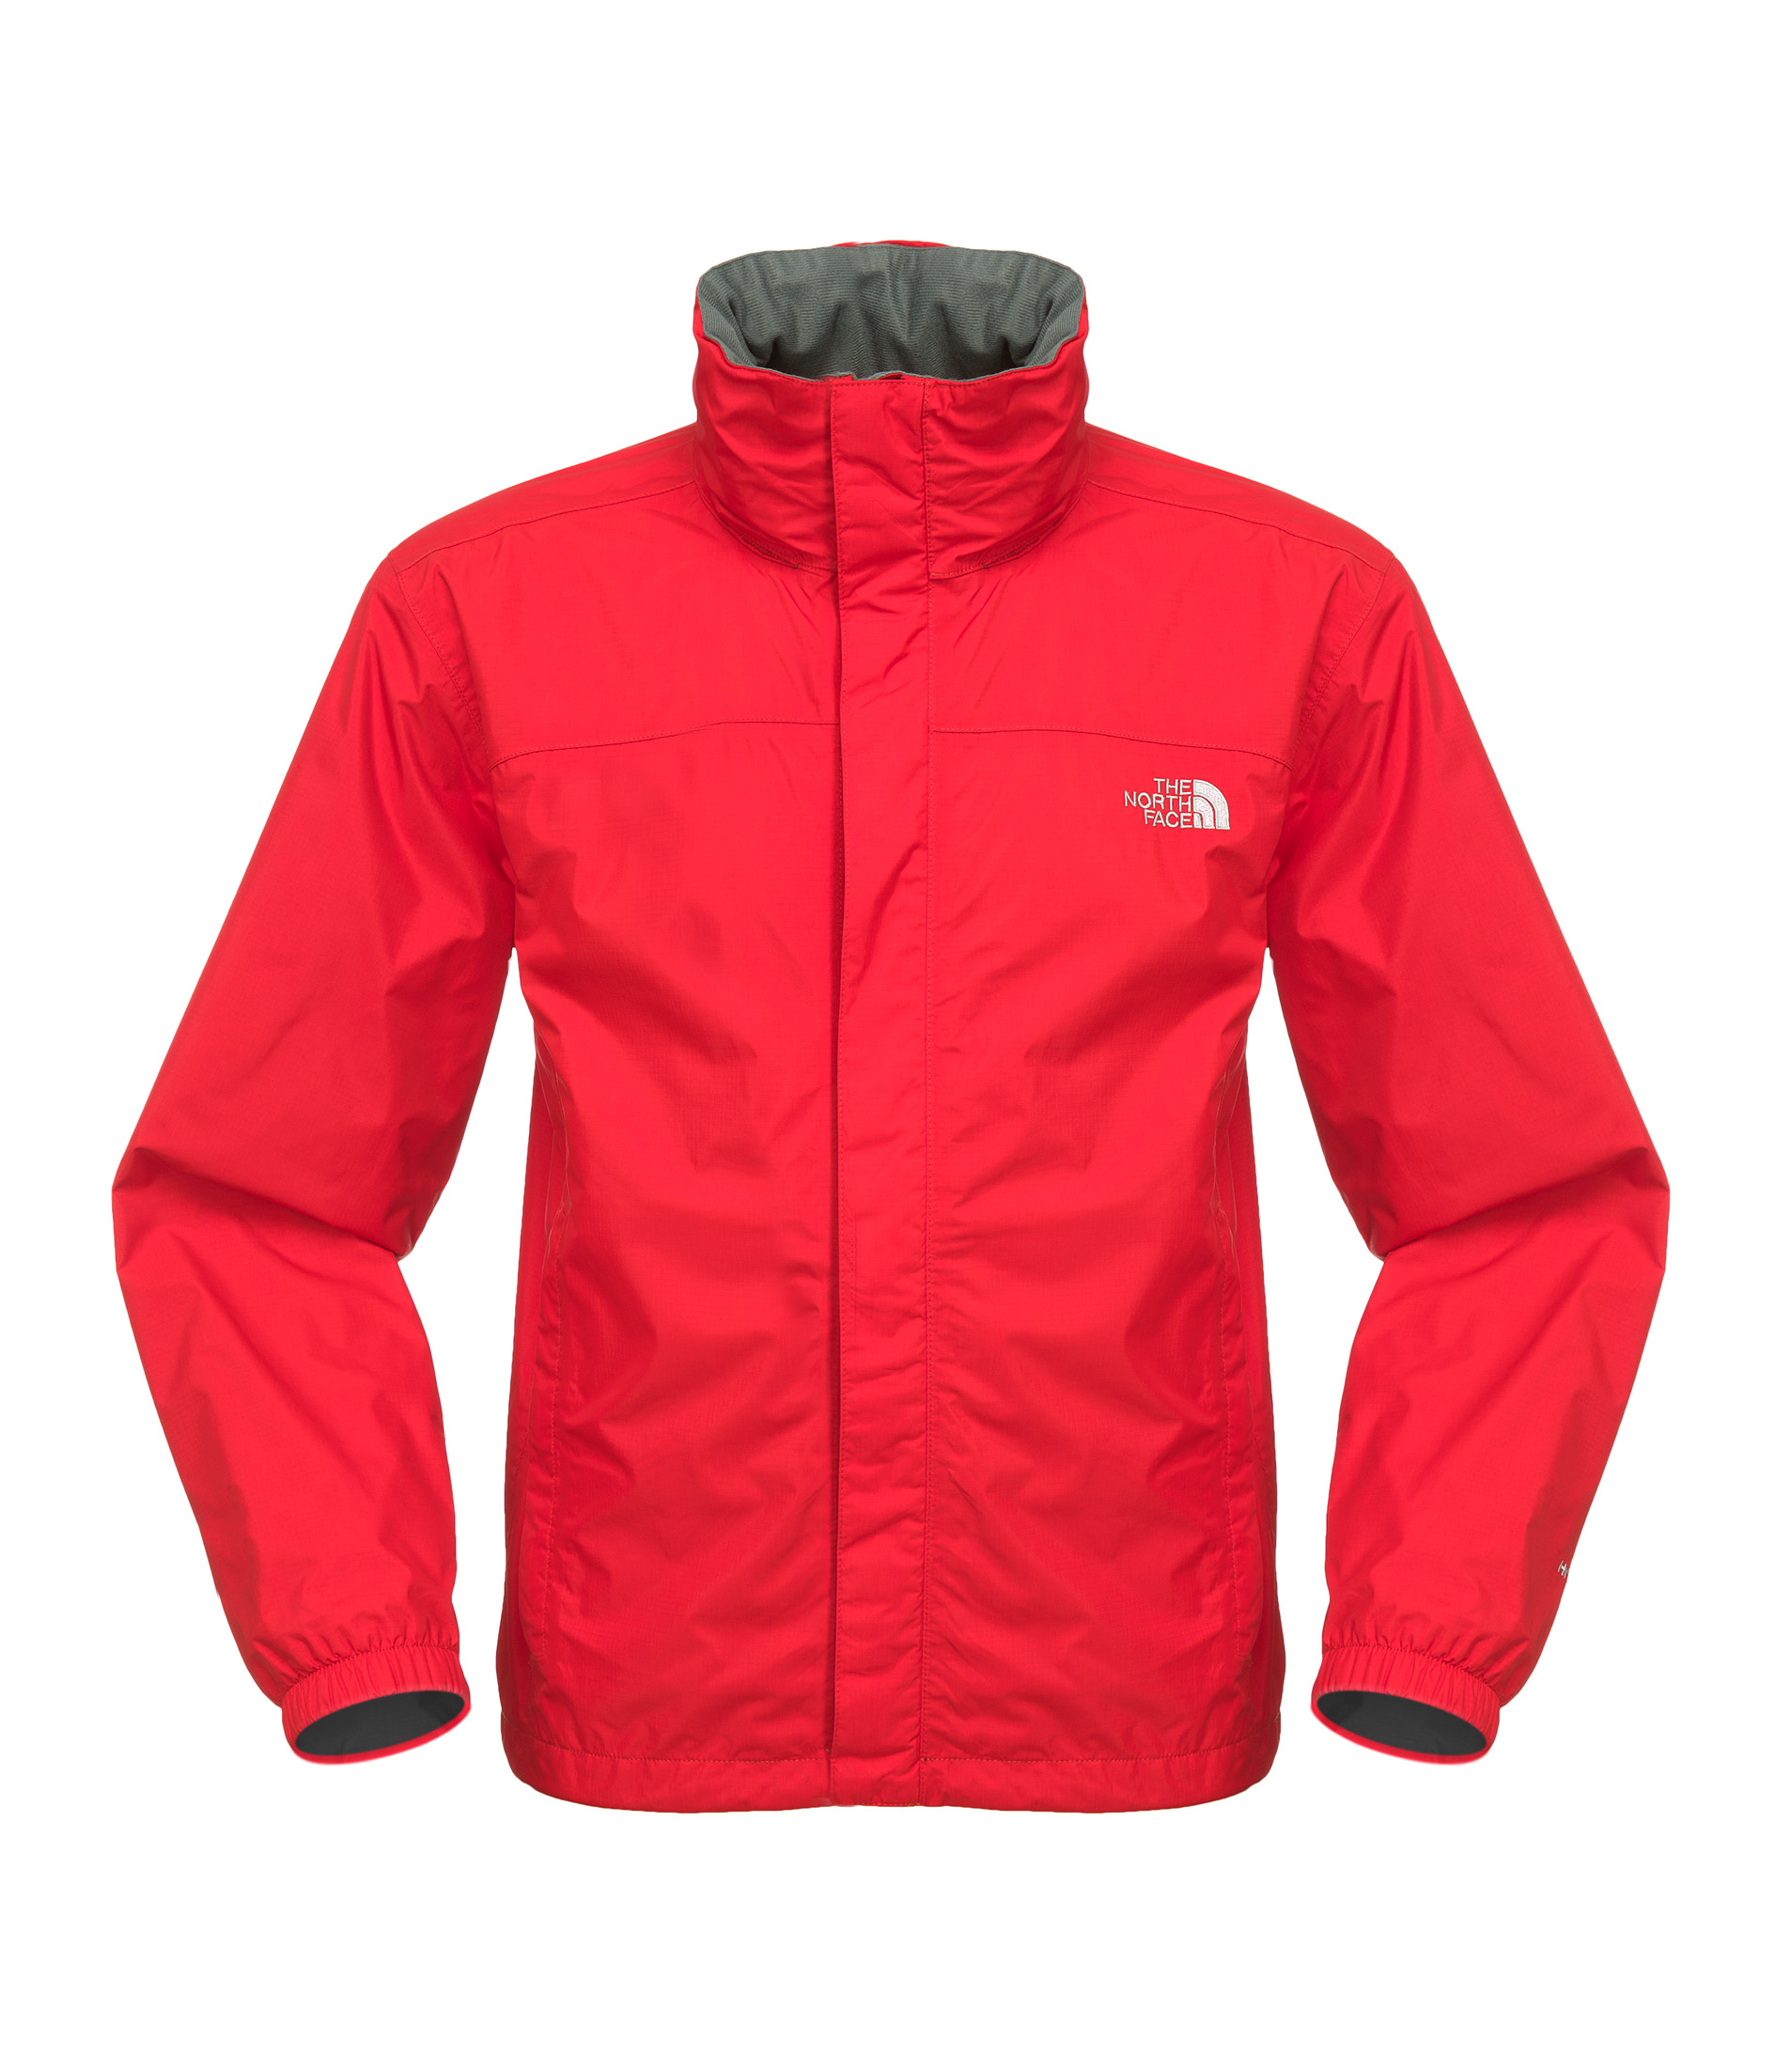 Giacca-The-North-Face-Mens-Resolve-Jacket-Centennial-Red-vendita-offerta